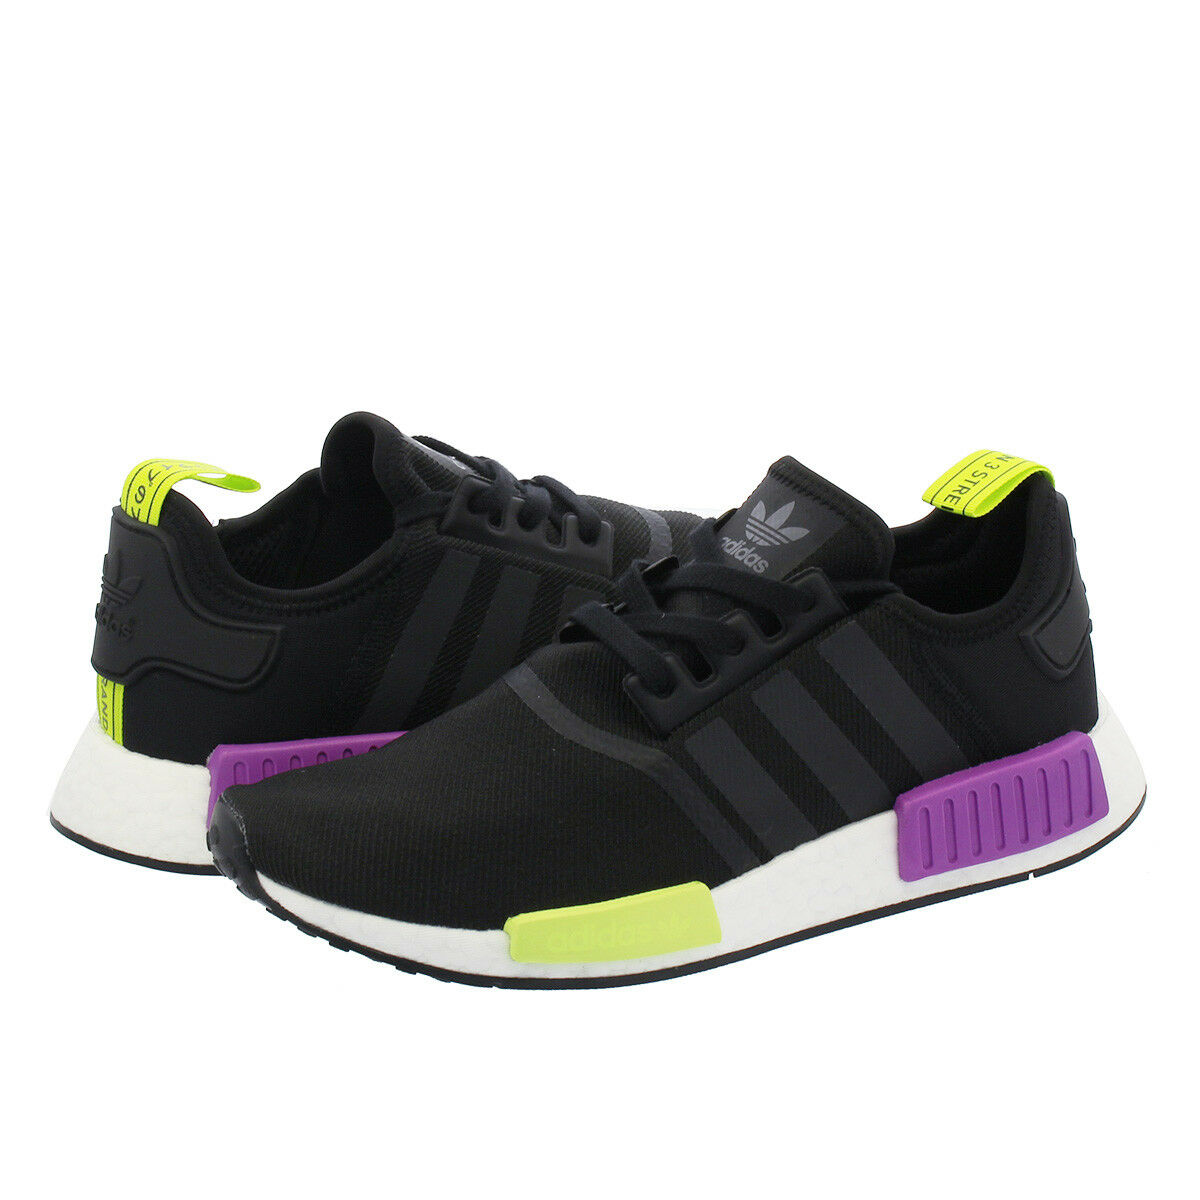 Adidas Nmd_R1 Chaussures Hommes Core Noir Choc Violet D96627 Taille 8-13